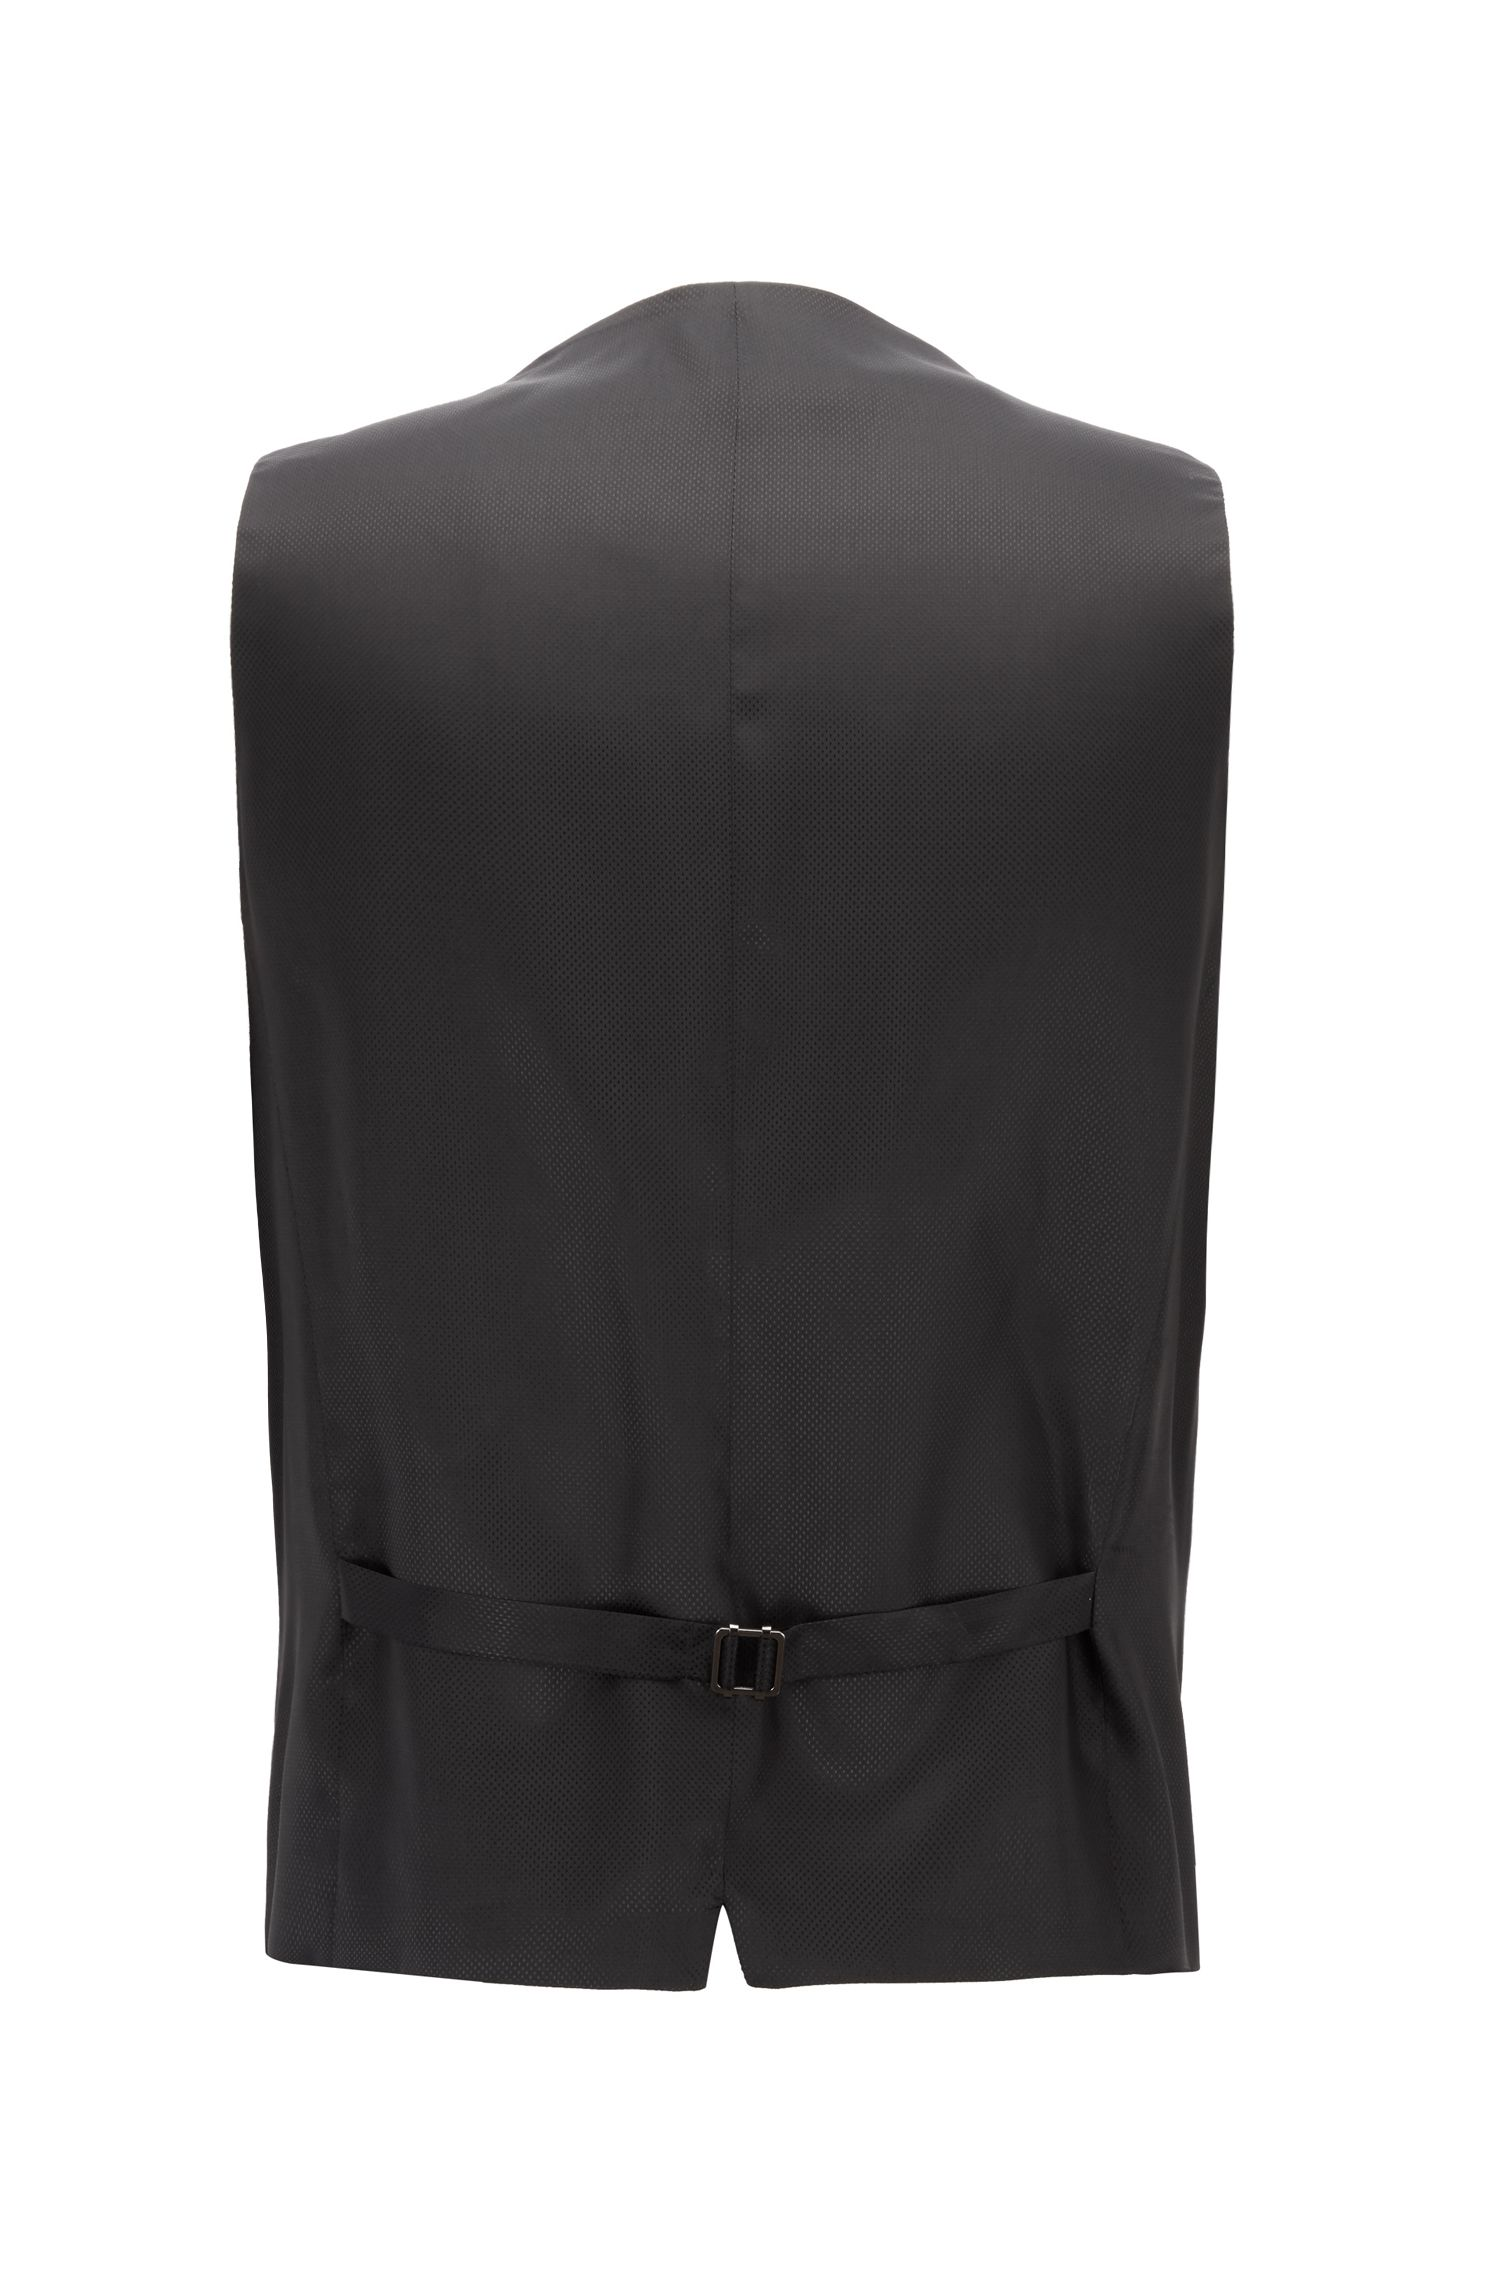 Virgin Wool Waistcoat, Slim Fit | Wilson CYL, Black